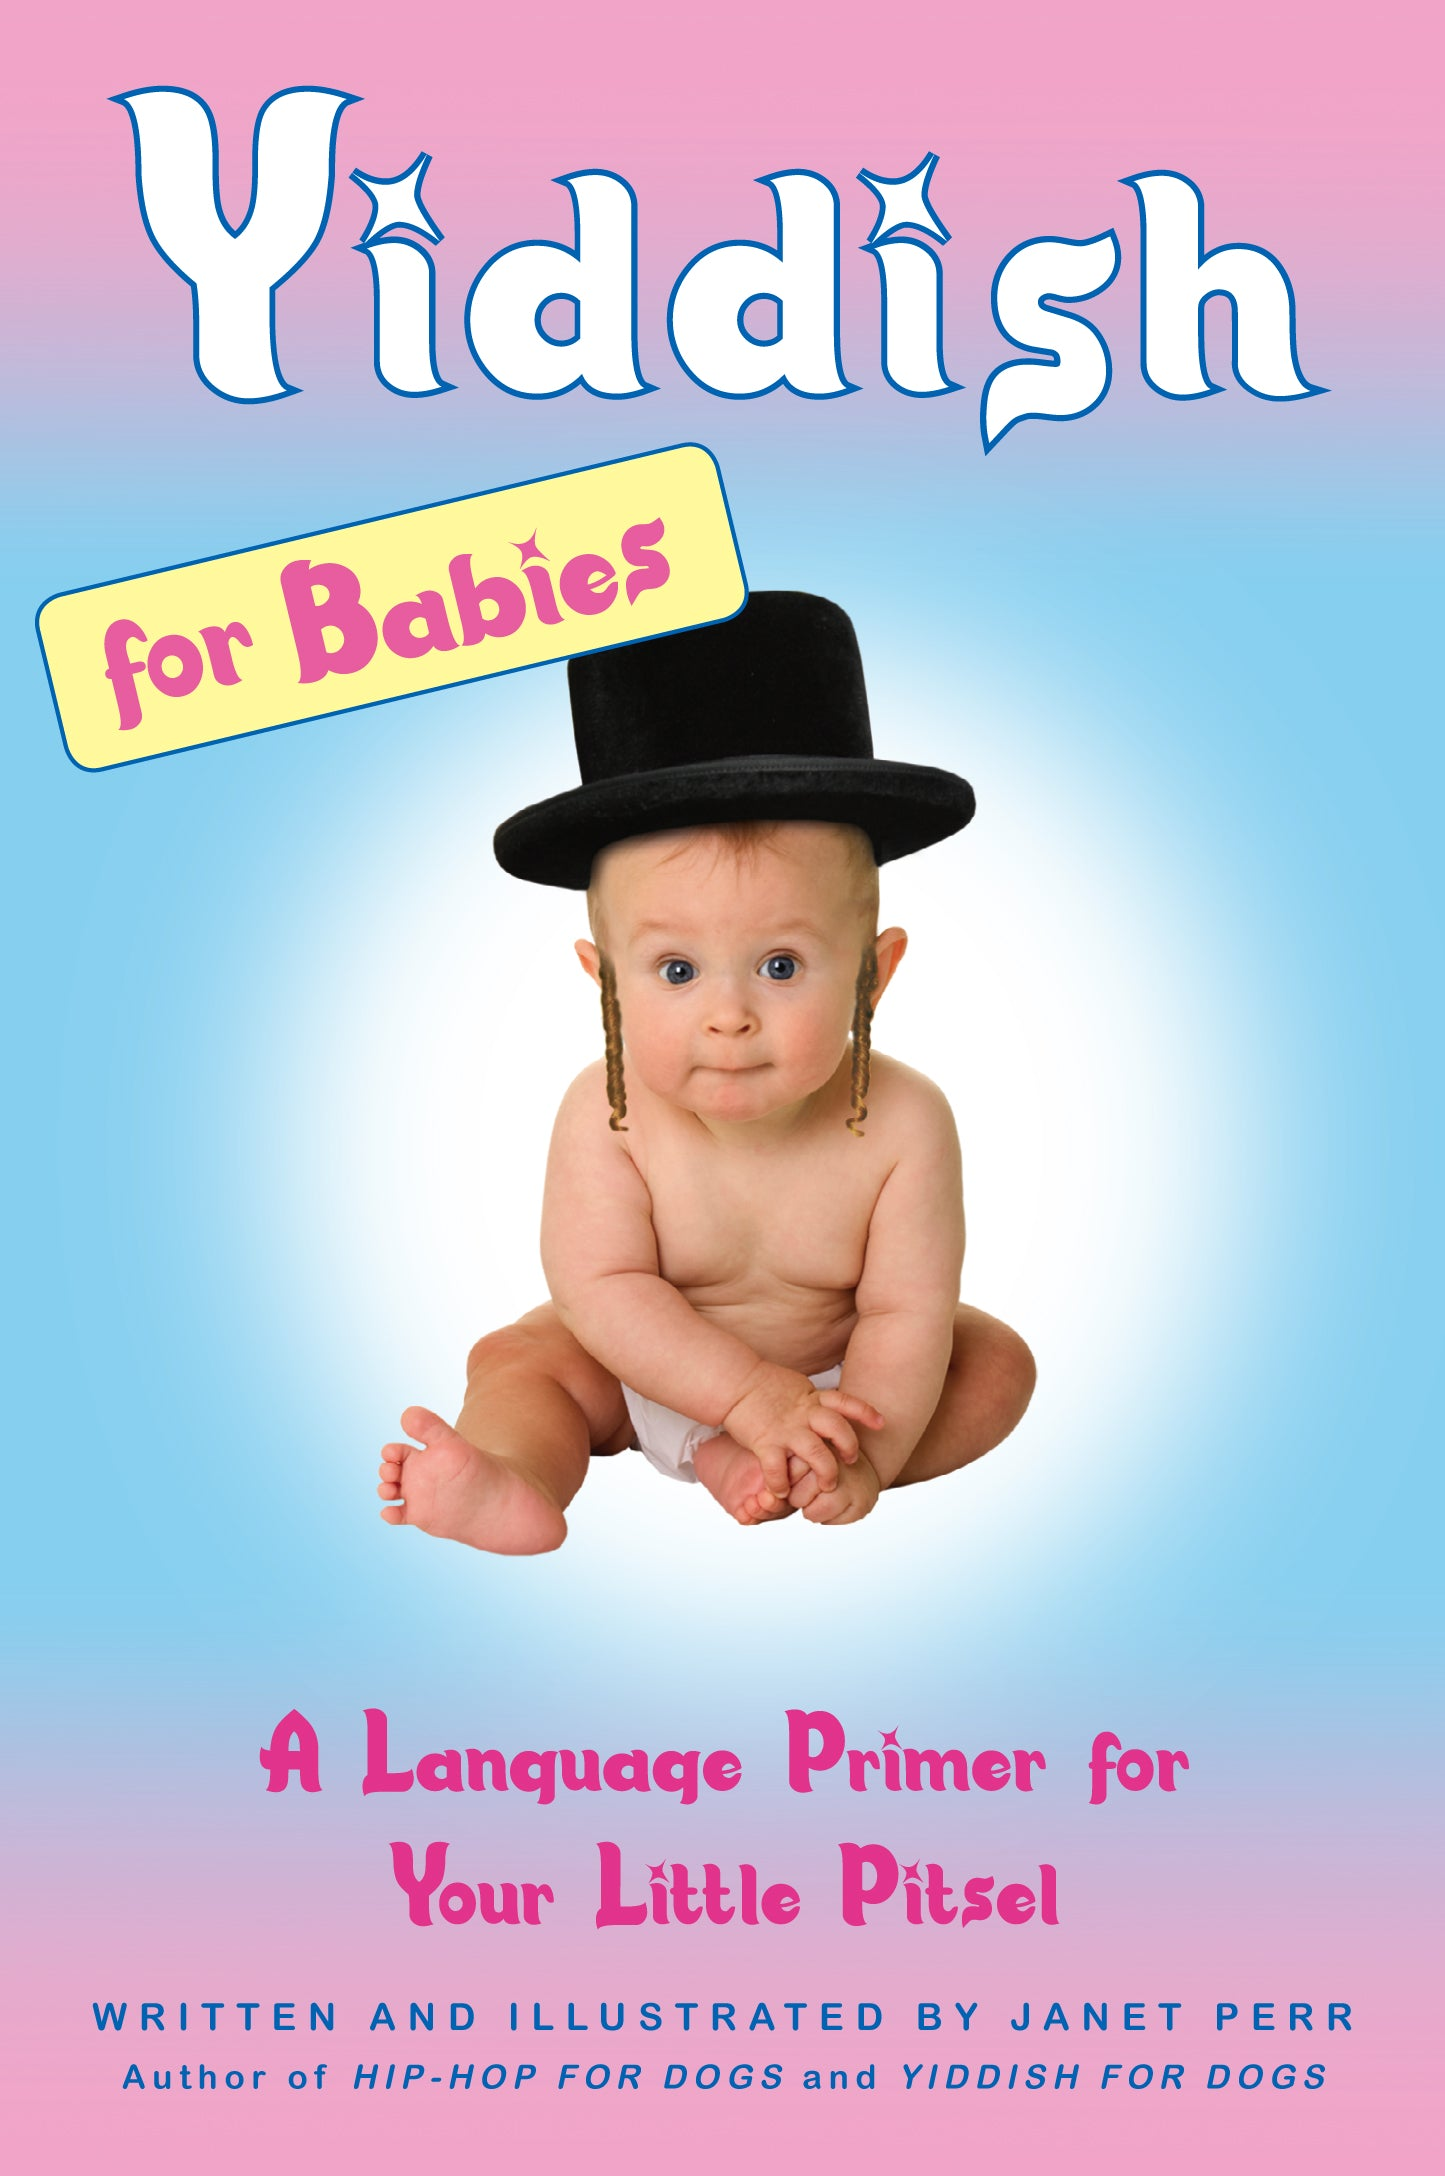 Yiddish for Babies- A Language Primer for Your Little Pitsel